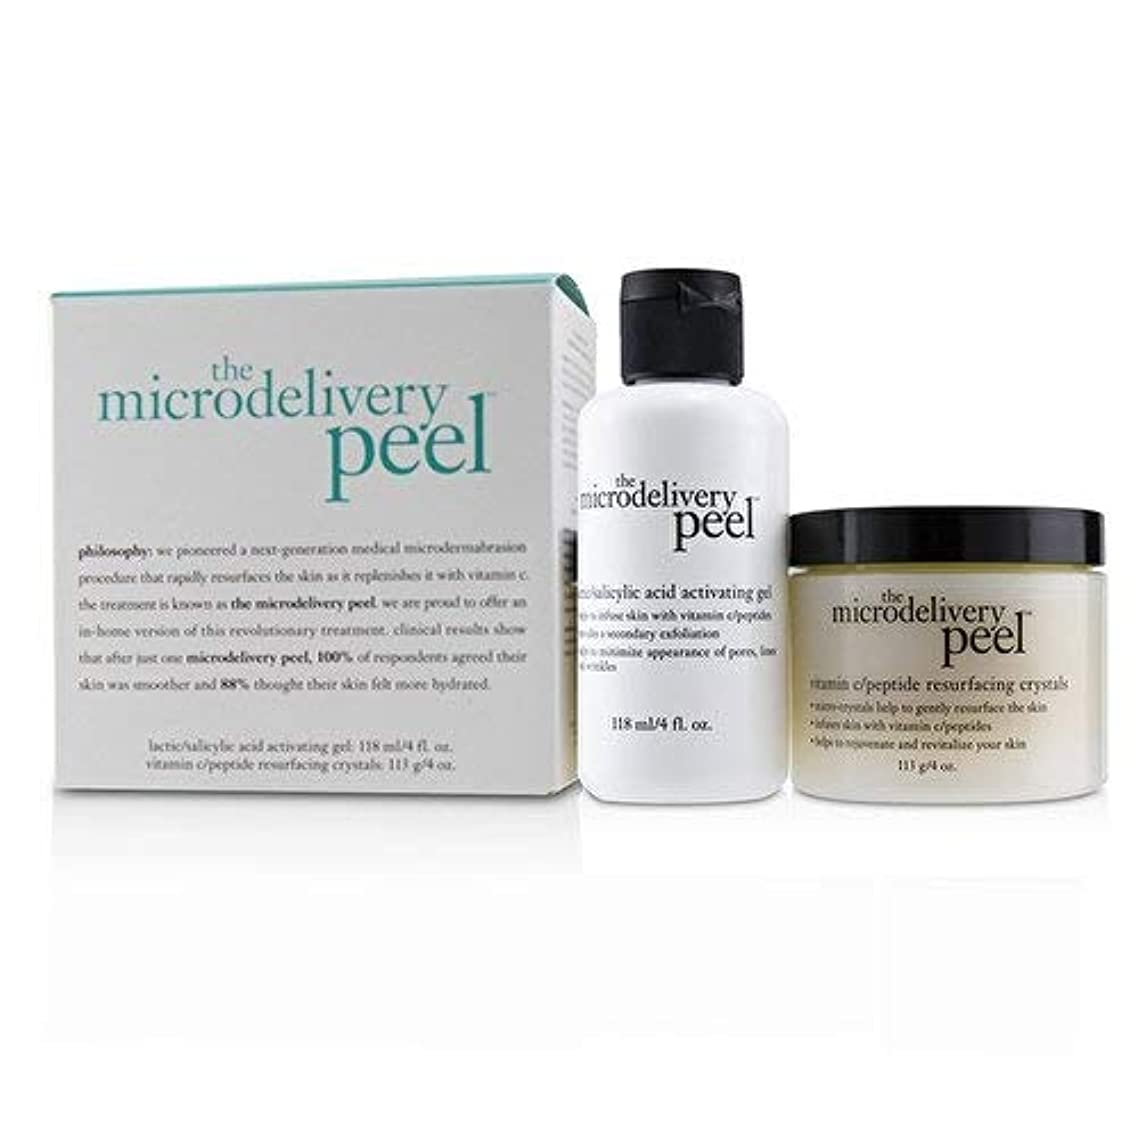 スクラッチ解釈識別フィロソフィー The Microdelivery Peel: Lactic/Salicylic Acid Activating Gel 118ml + Vitamin C/Peptide Resurfacing Crystals...